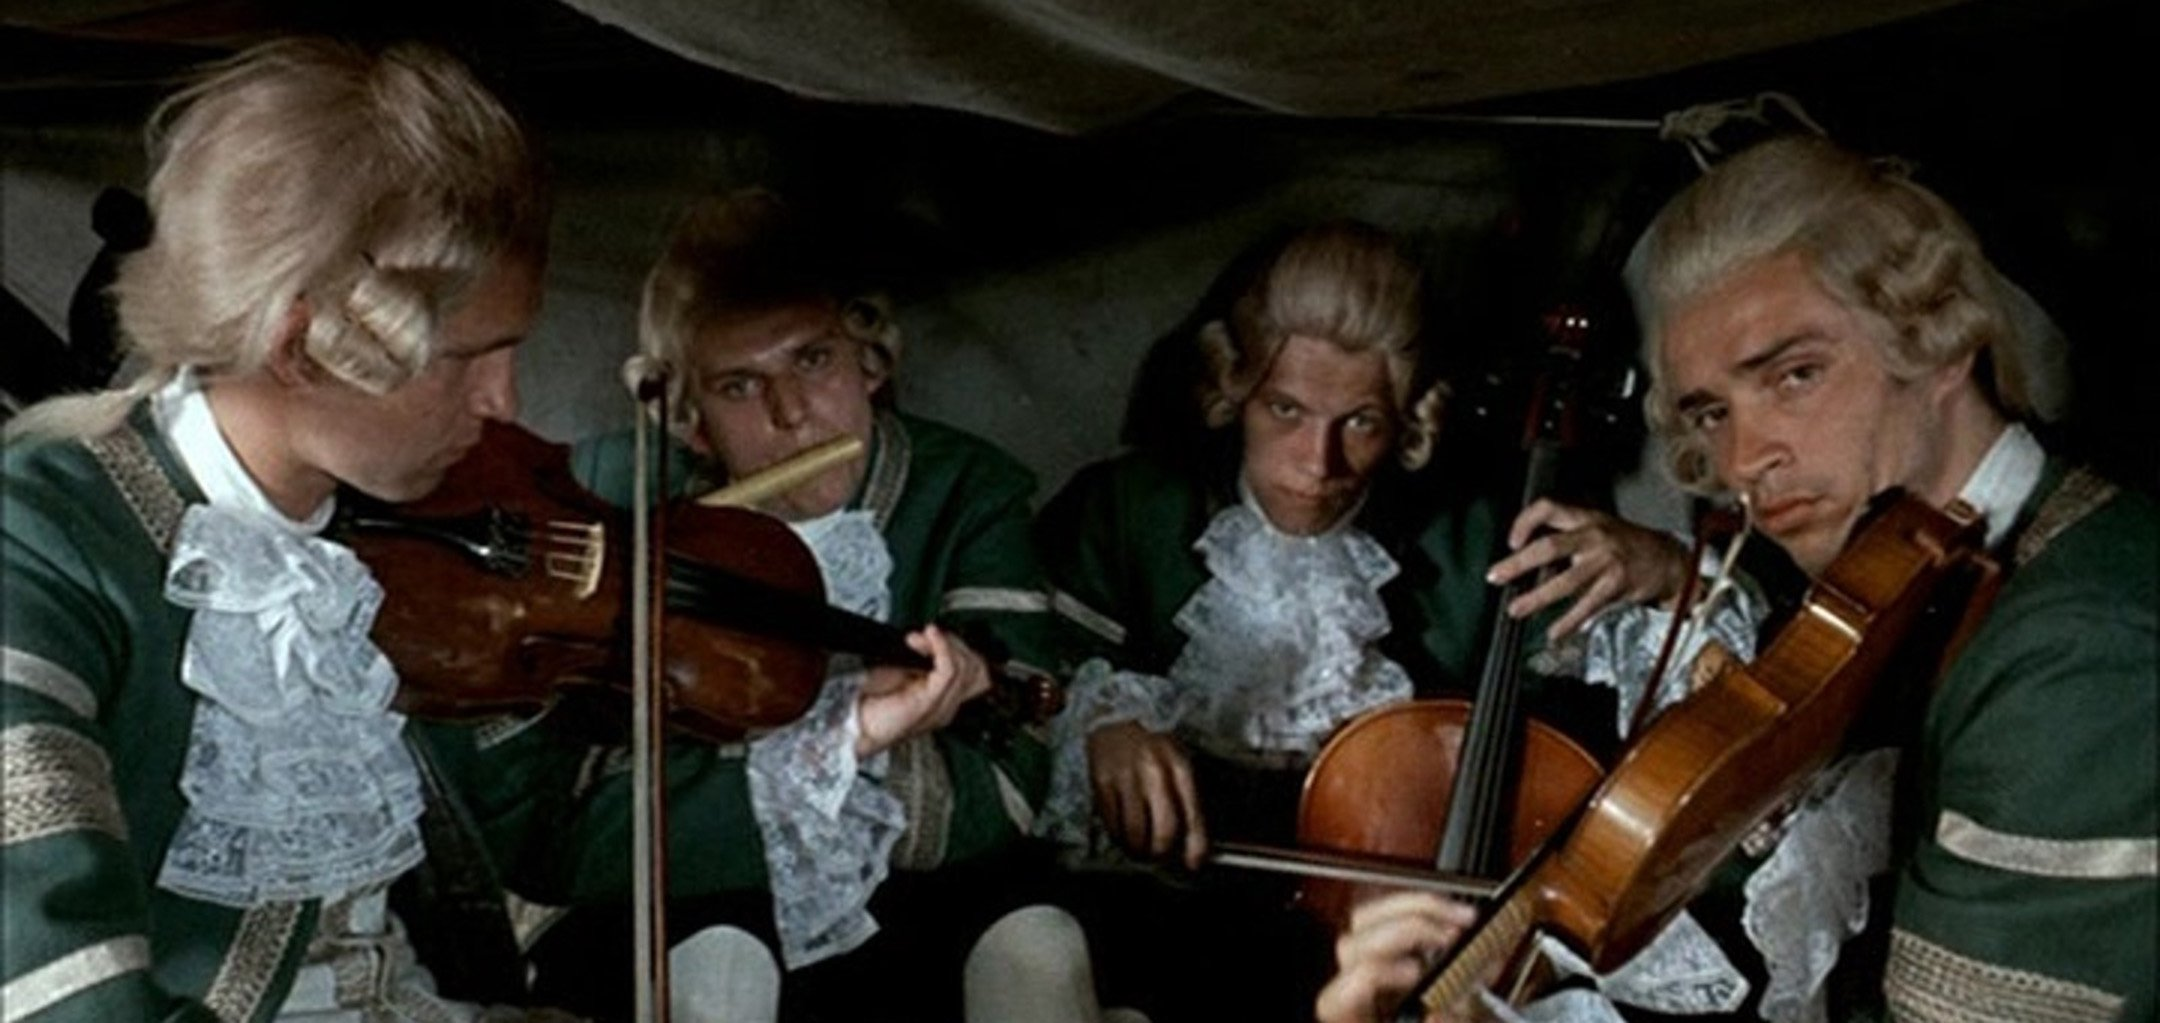 4 violinists play in the back of a carriage in a still from 'Pacho, the Thief of Hybe' (1976)